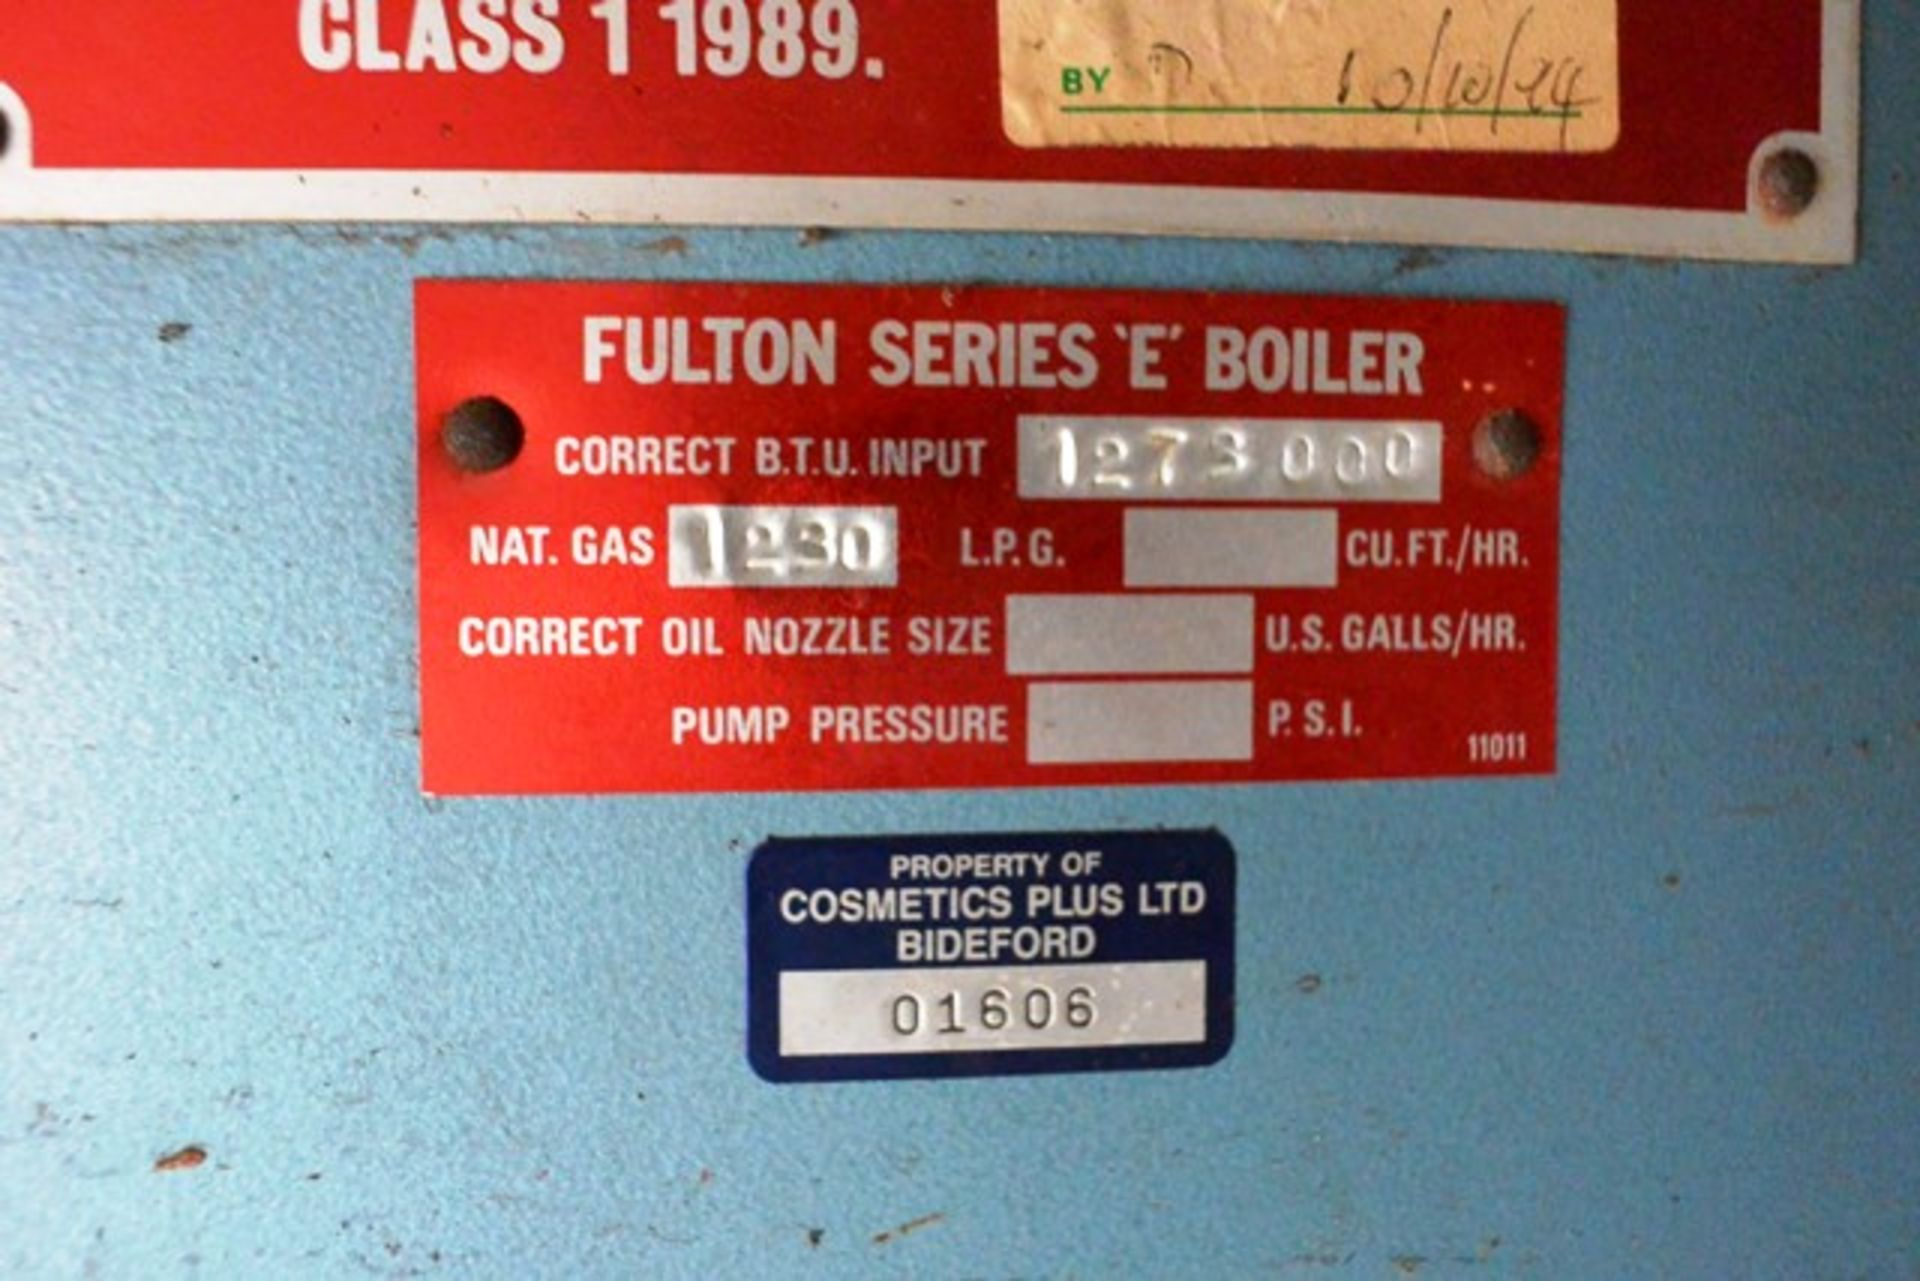 Fulton steam boiler, model 30E, serial no. B7026, design pressure 895 N/mm², test pressure /34N/ - Image 6 of 11